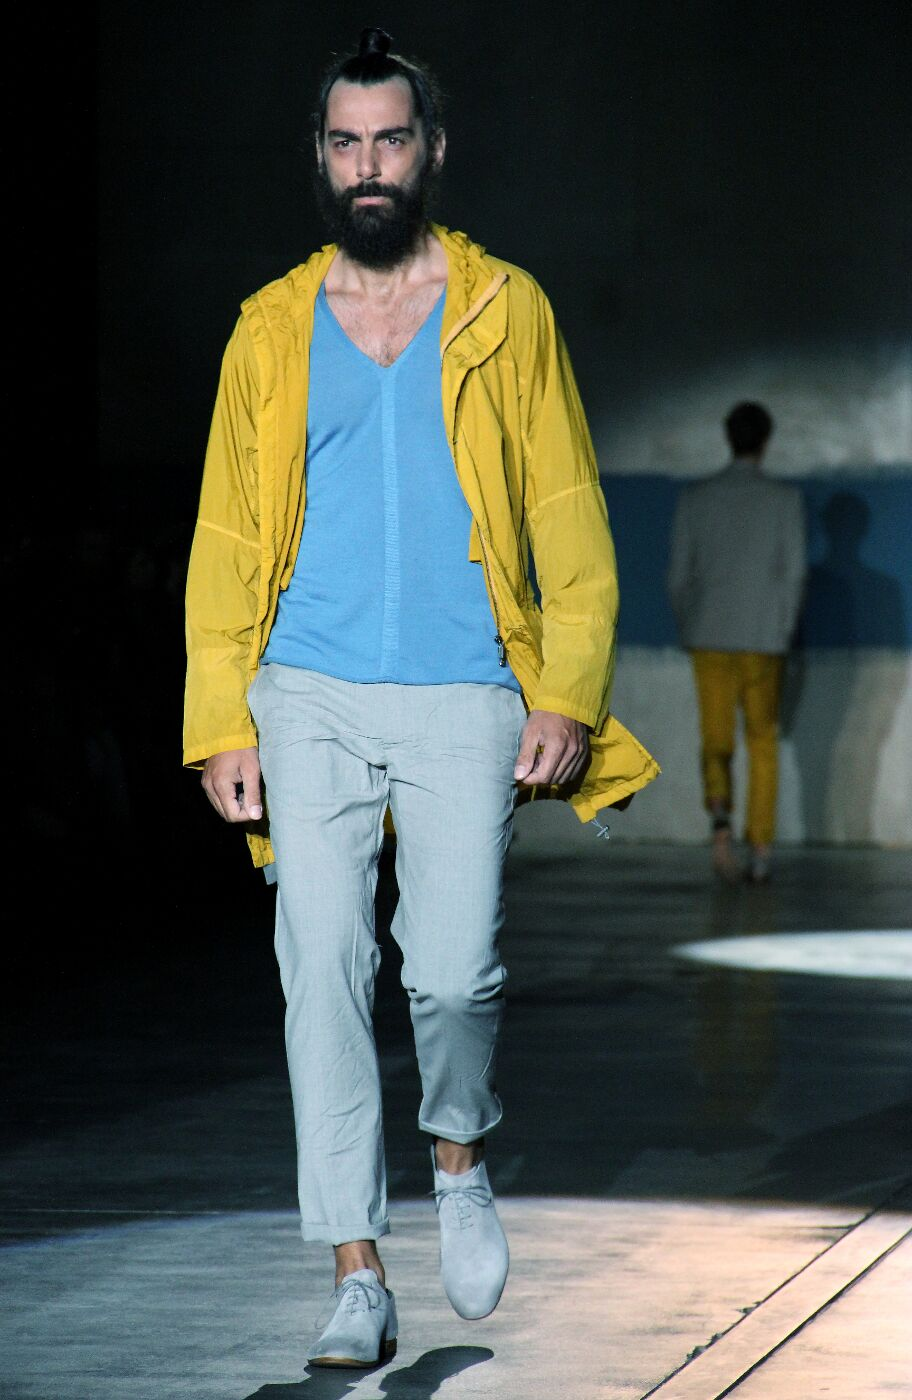 Boho Clothing And Accessories For Men Men Fashion Show Without Dress